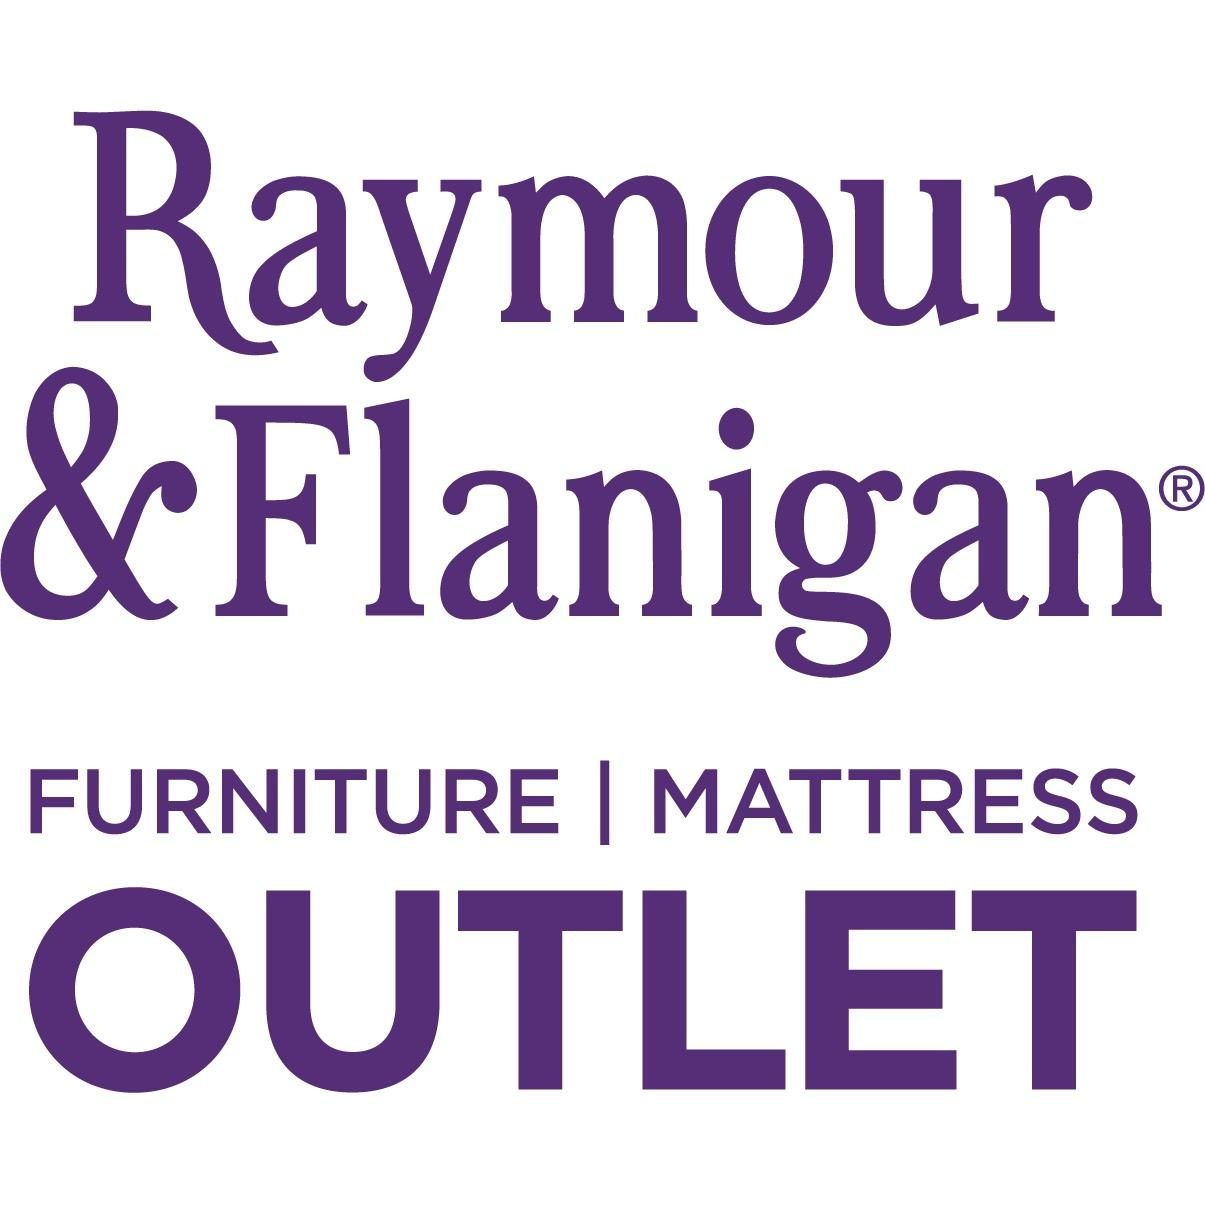 Raymour & Flanigan Furniture and Mattress Outlet image 9